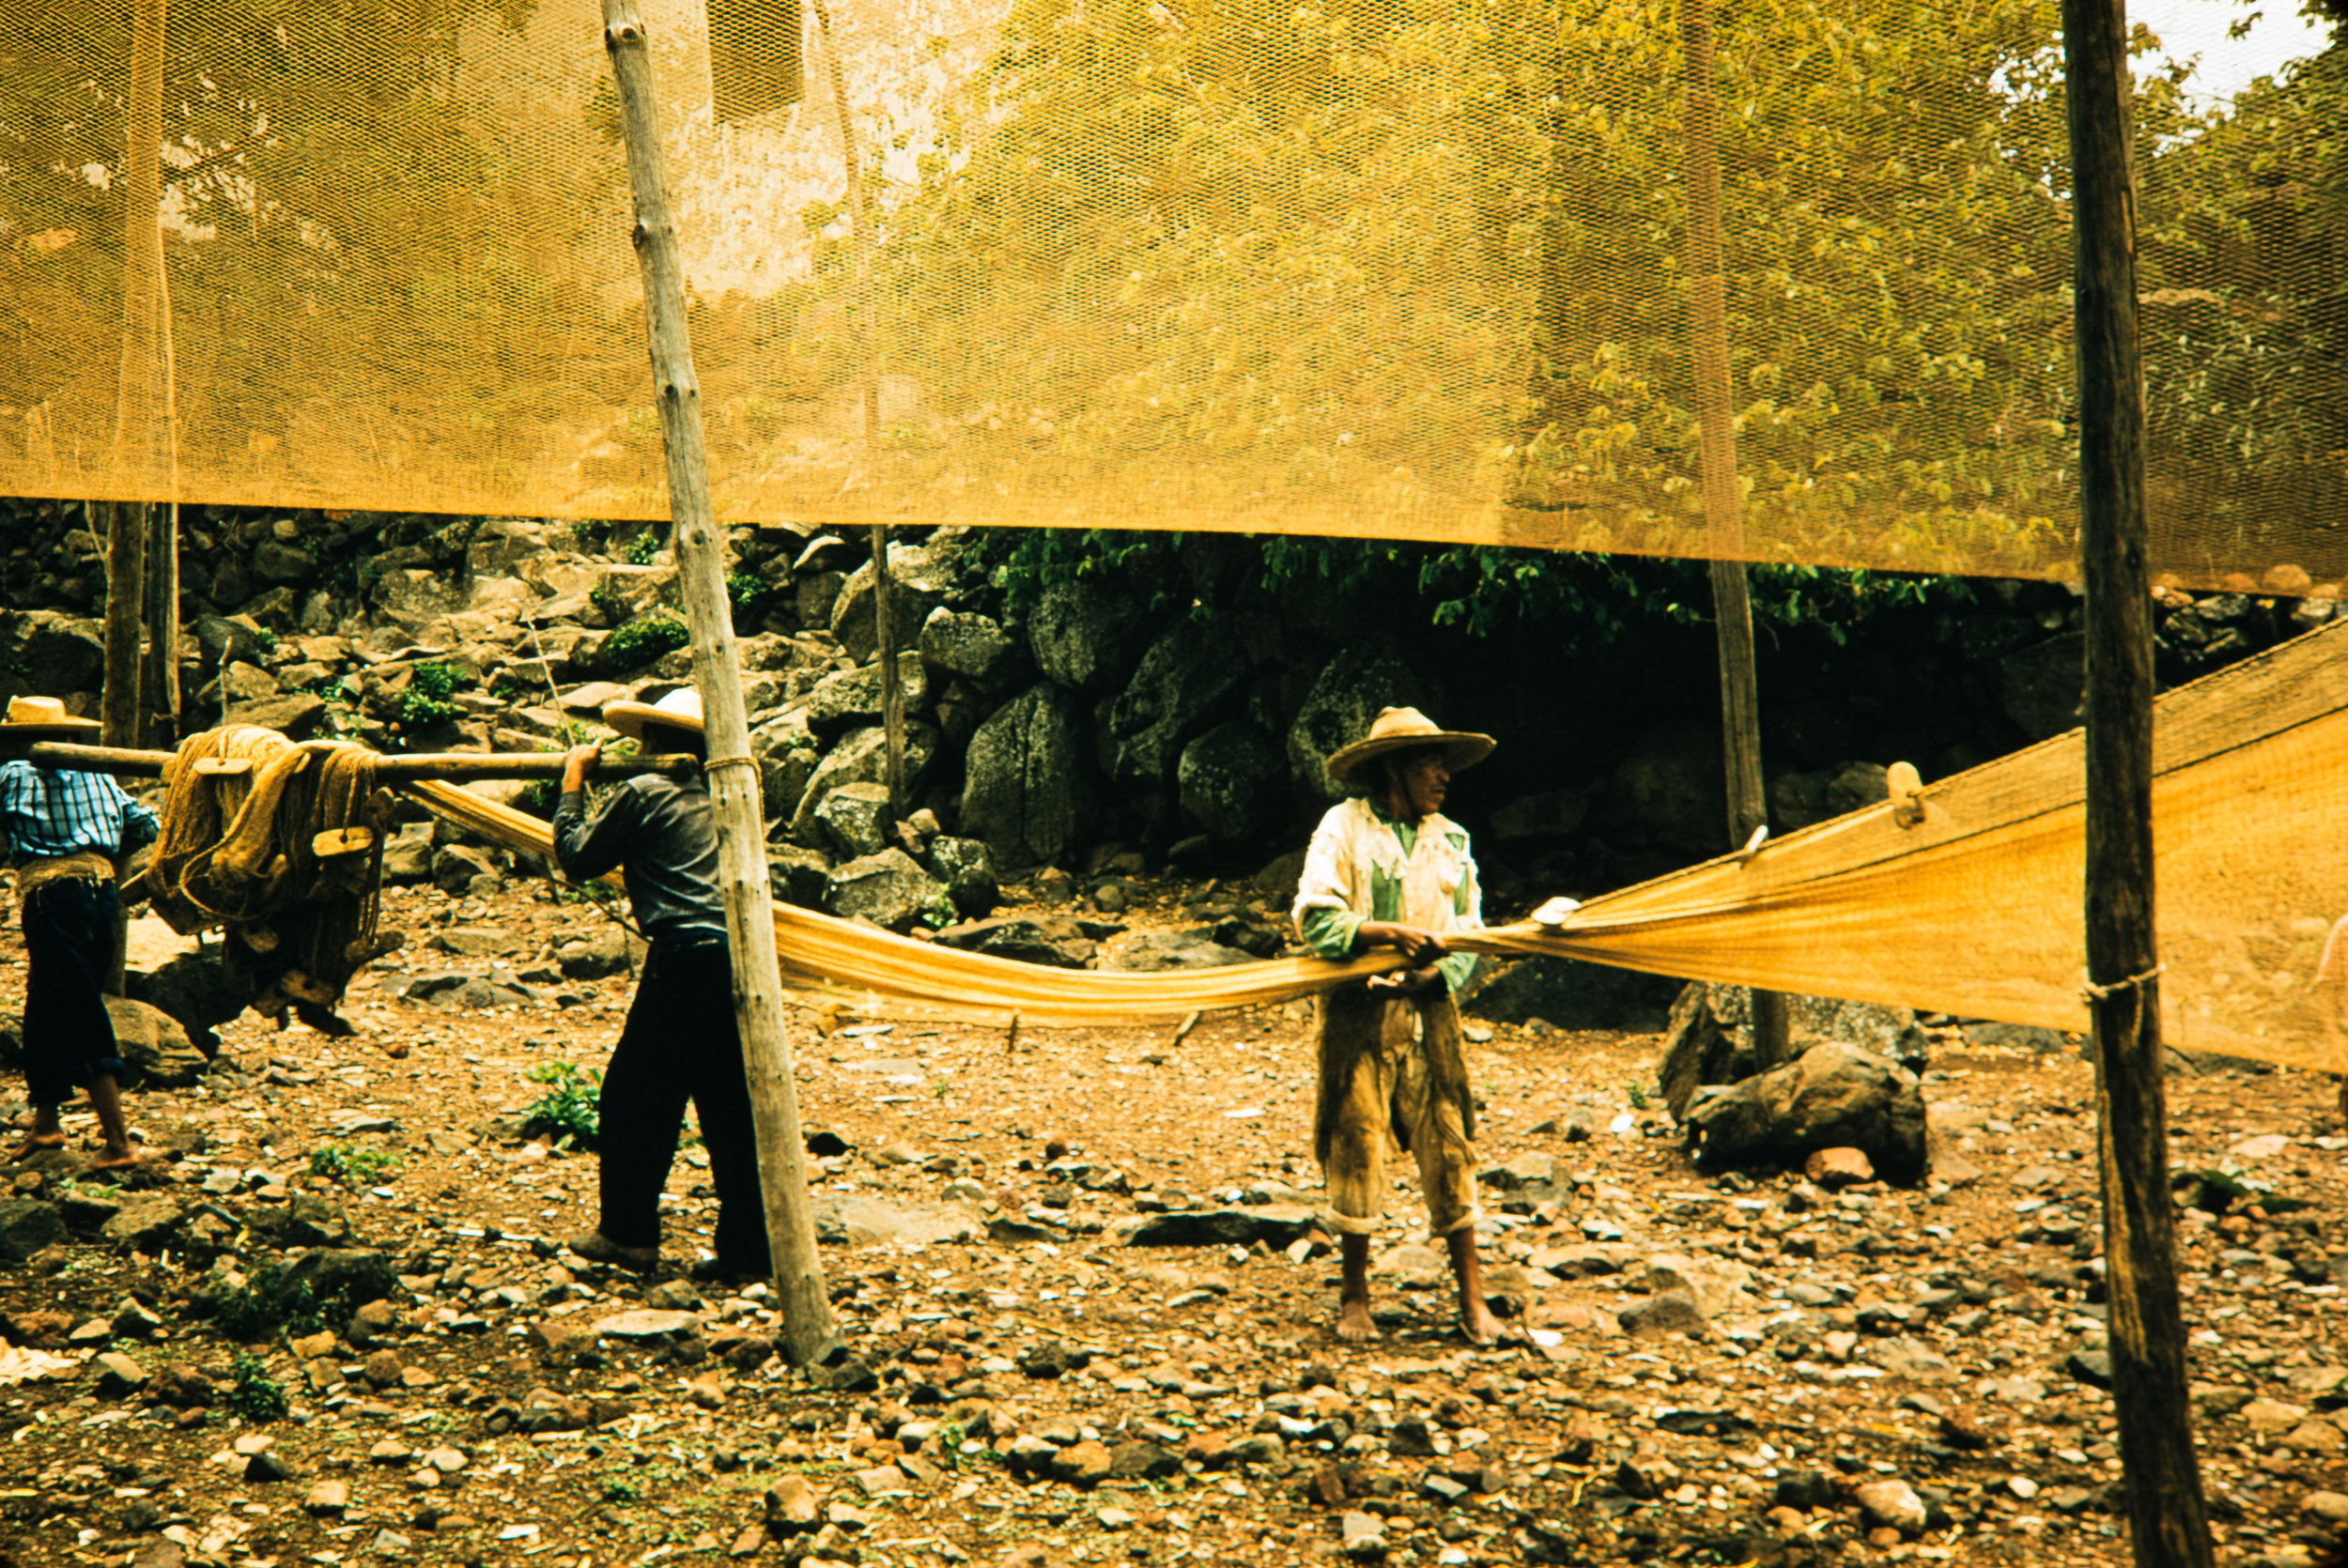 With fishing nets, Mexico, 1957